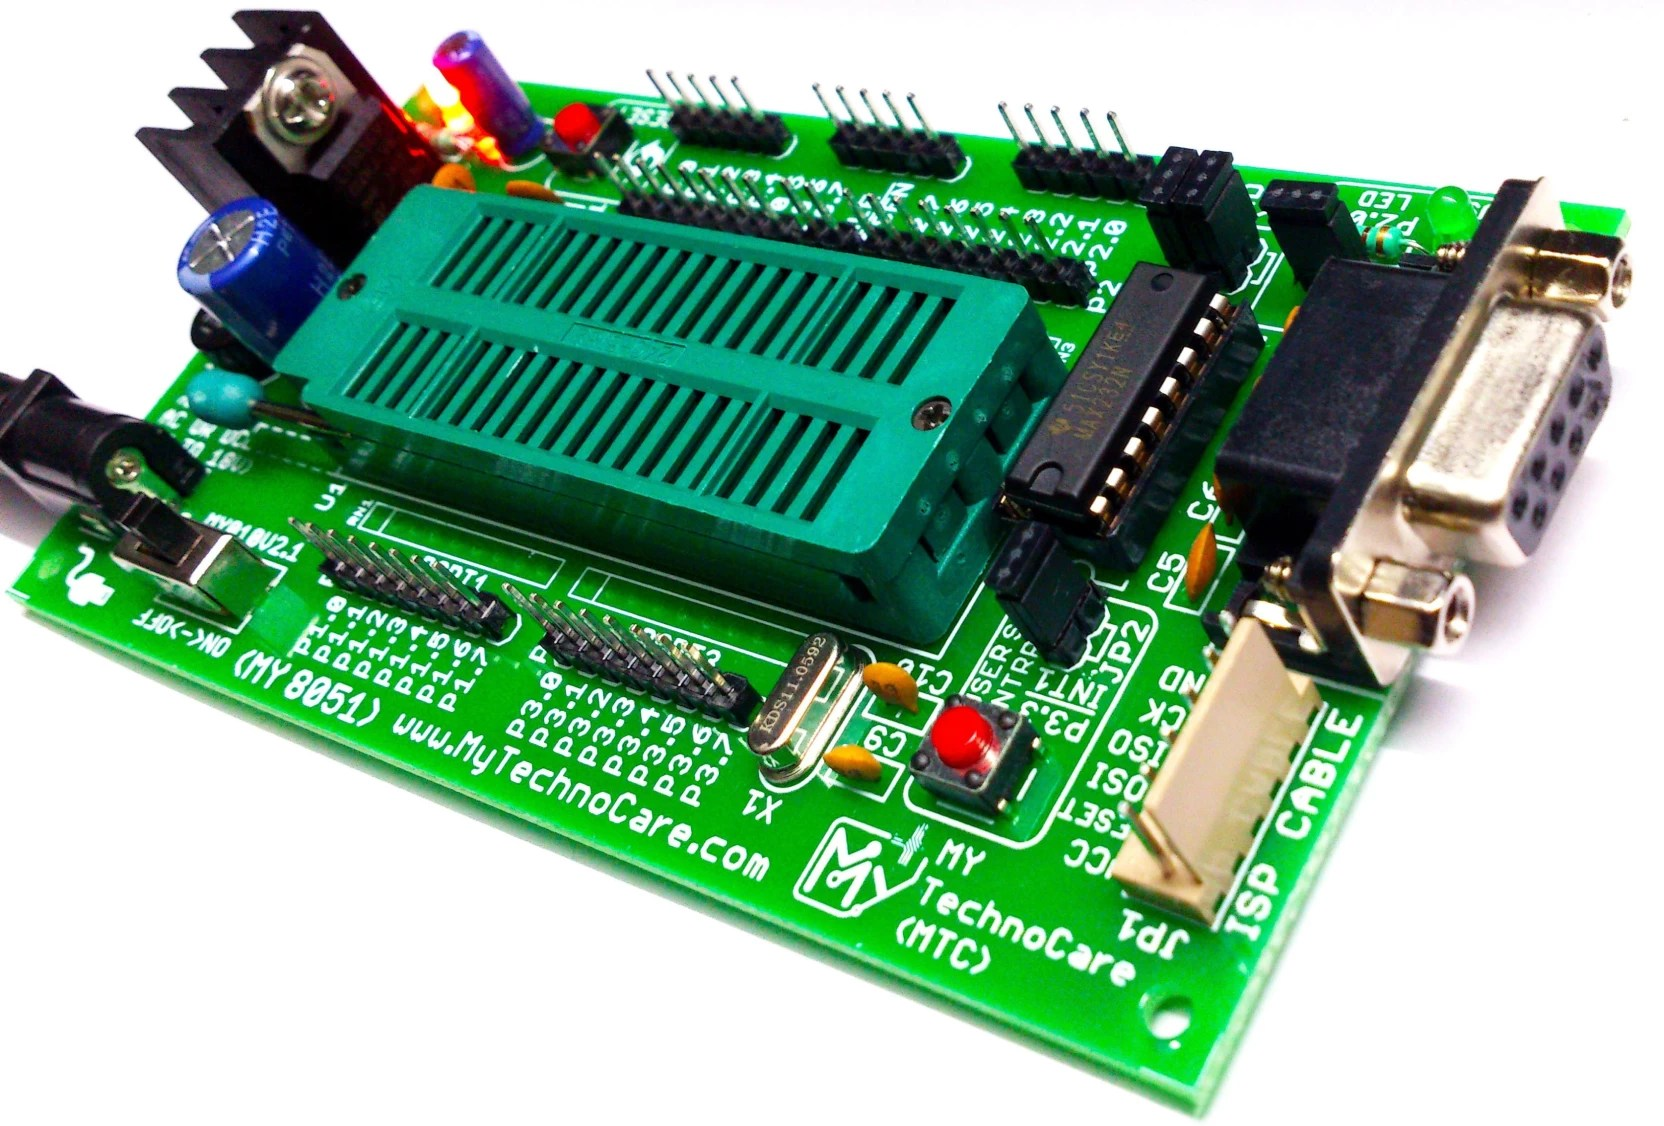 medium resolution of my technocare atmel 8051 development board zif socket max232 without at89s52 microcontroller ic support 89s51 xx 89cxx p89v51rd2 architecture 40 pin chip